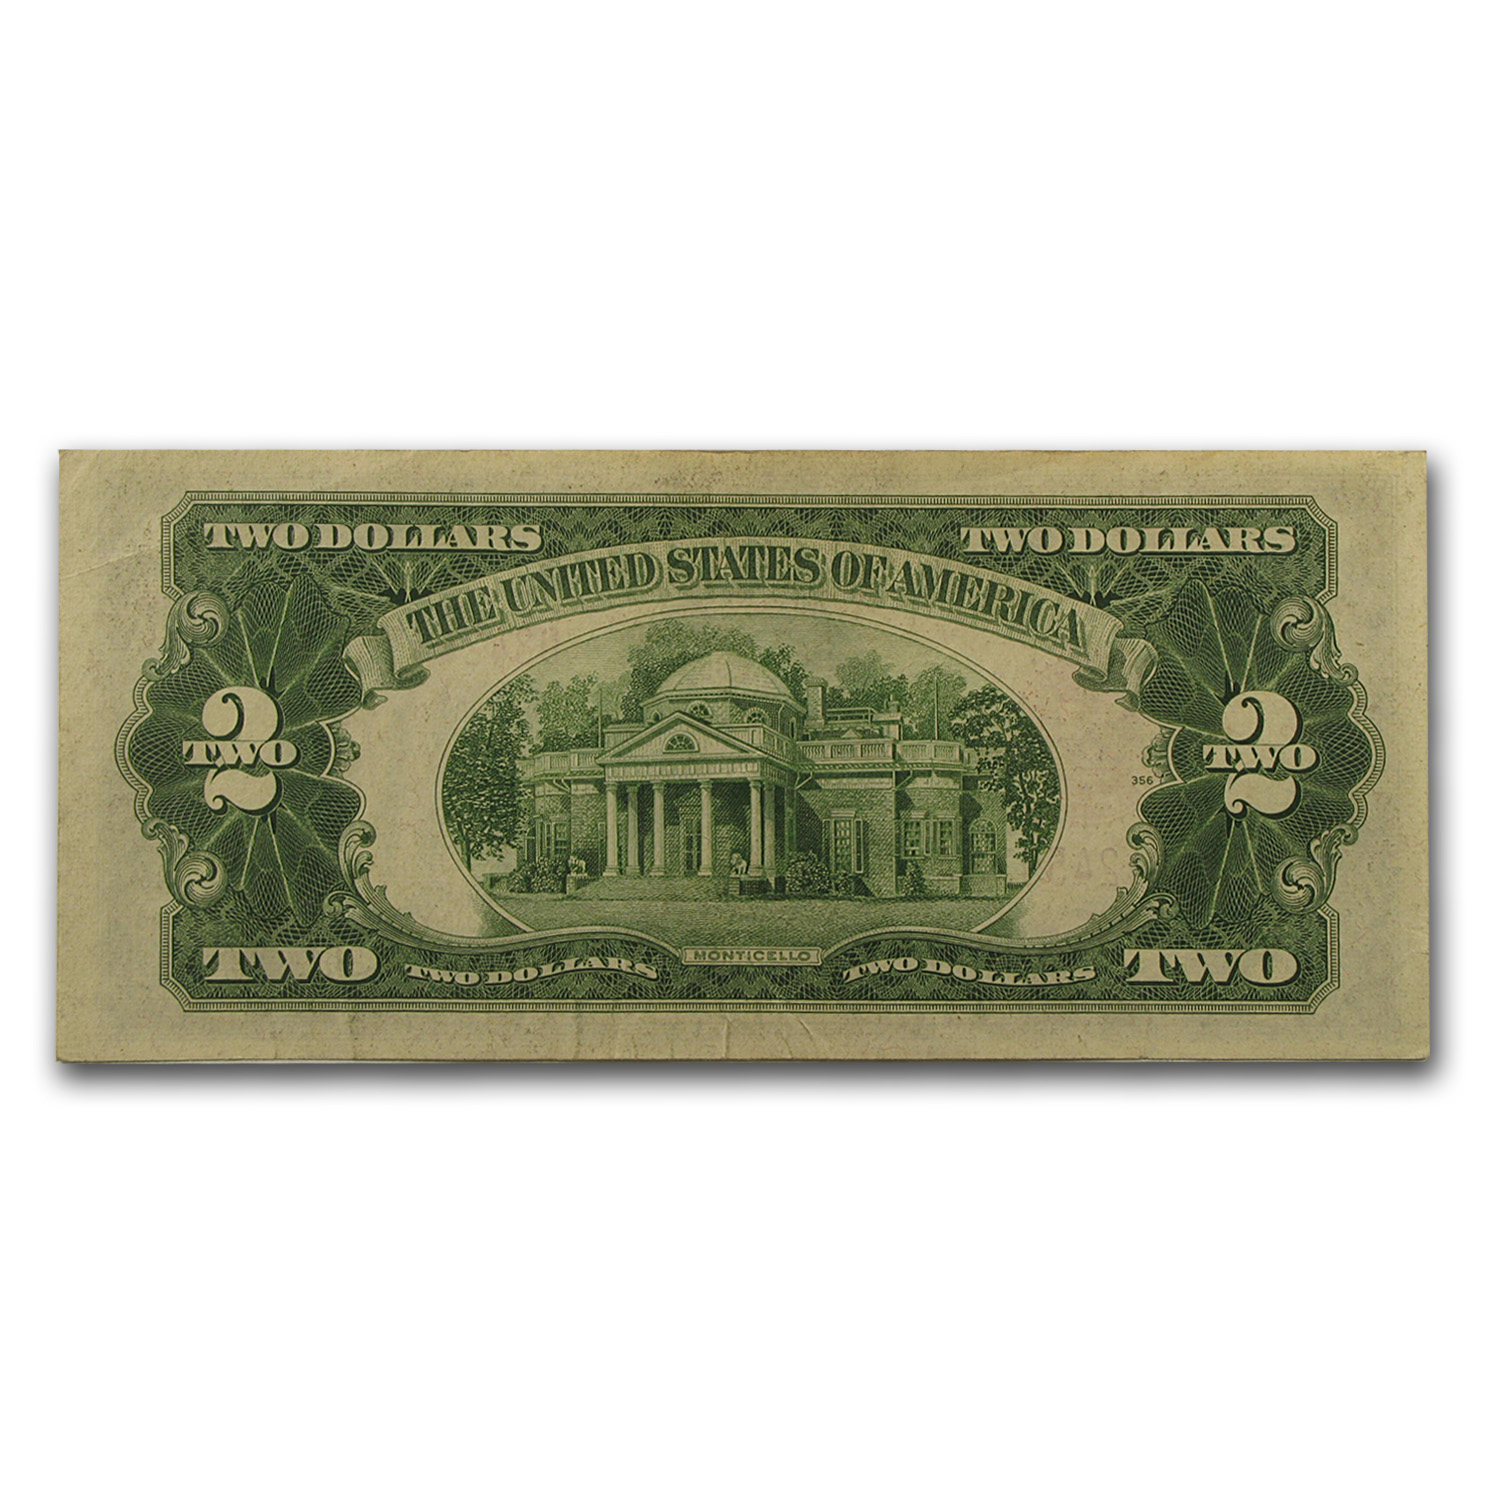 1928-C thru 1928-G $2.00 U.S. Notes Red Seal XF